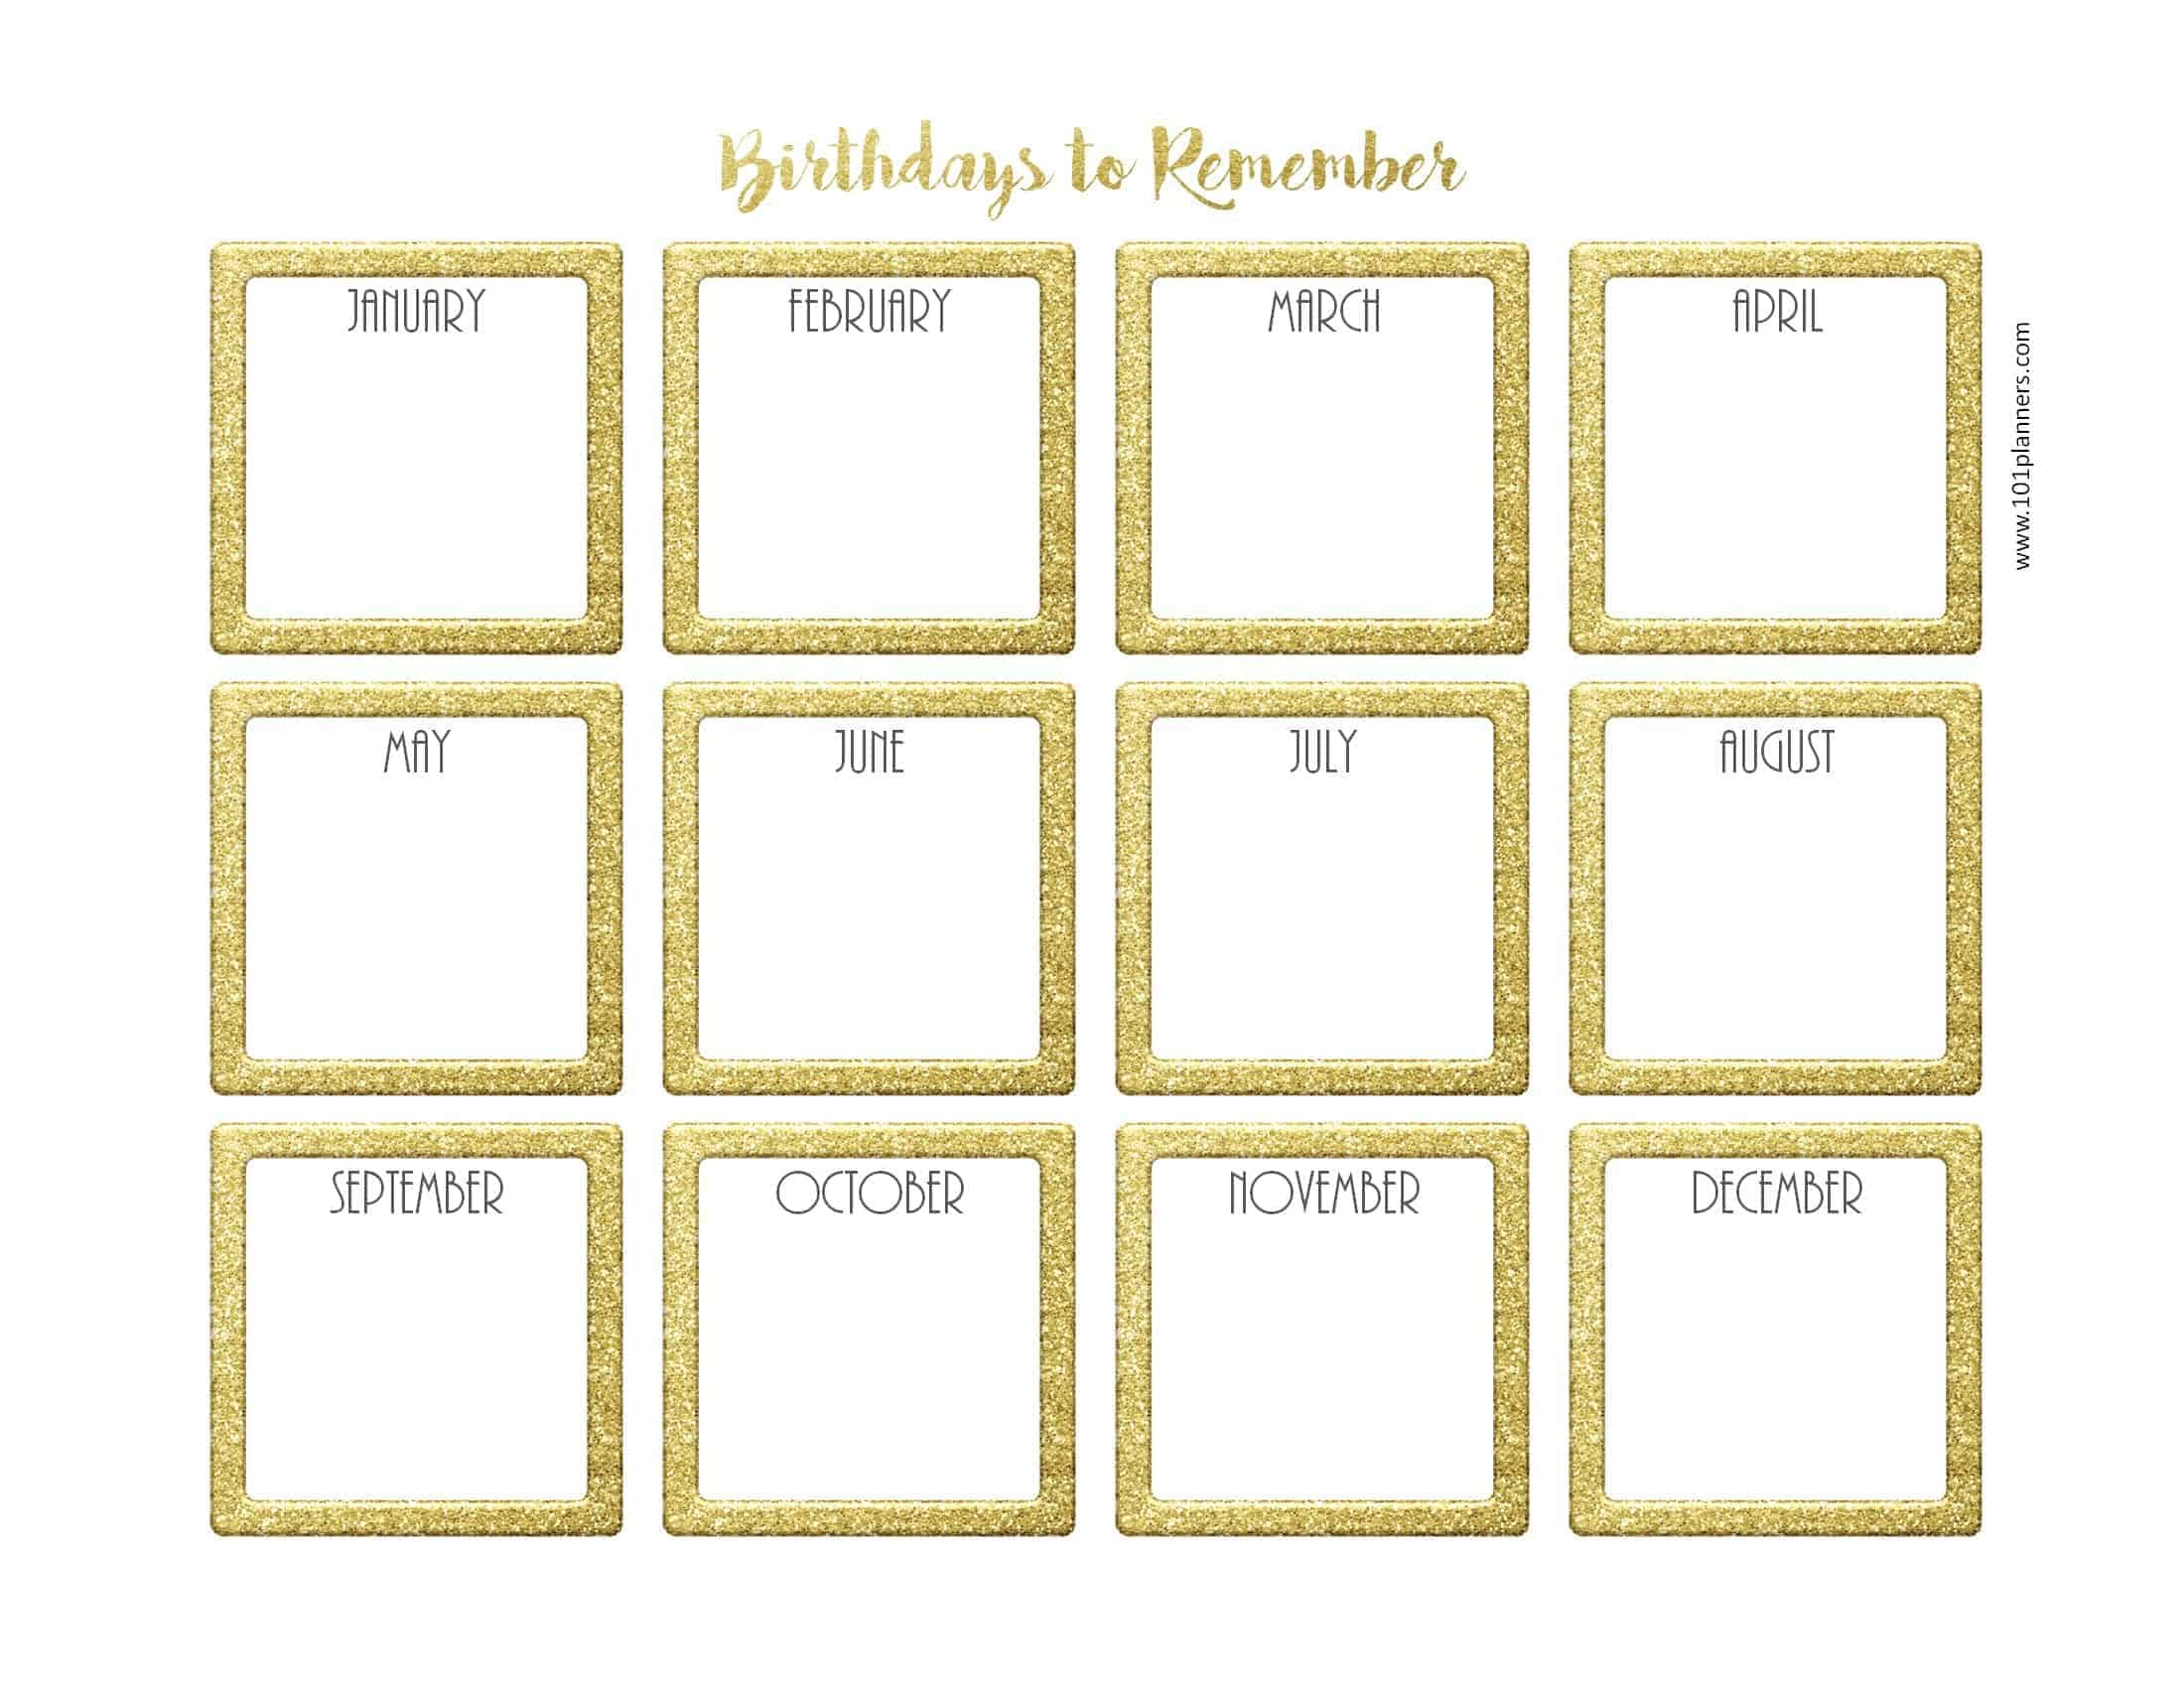 Birthday Calendars : Free birthday calendar customize online print at home